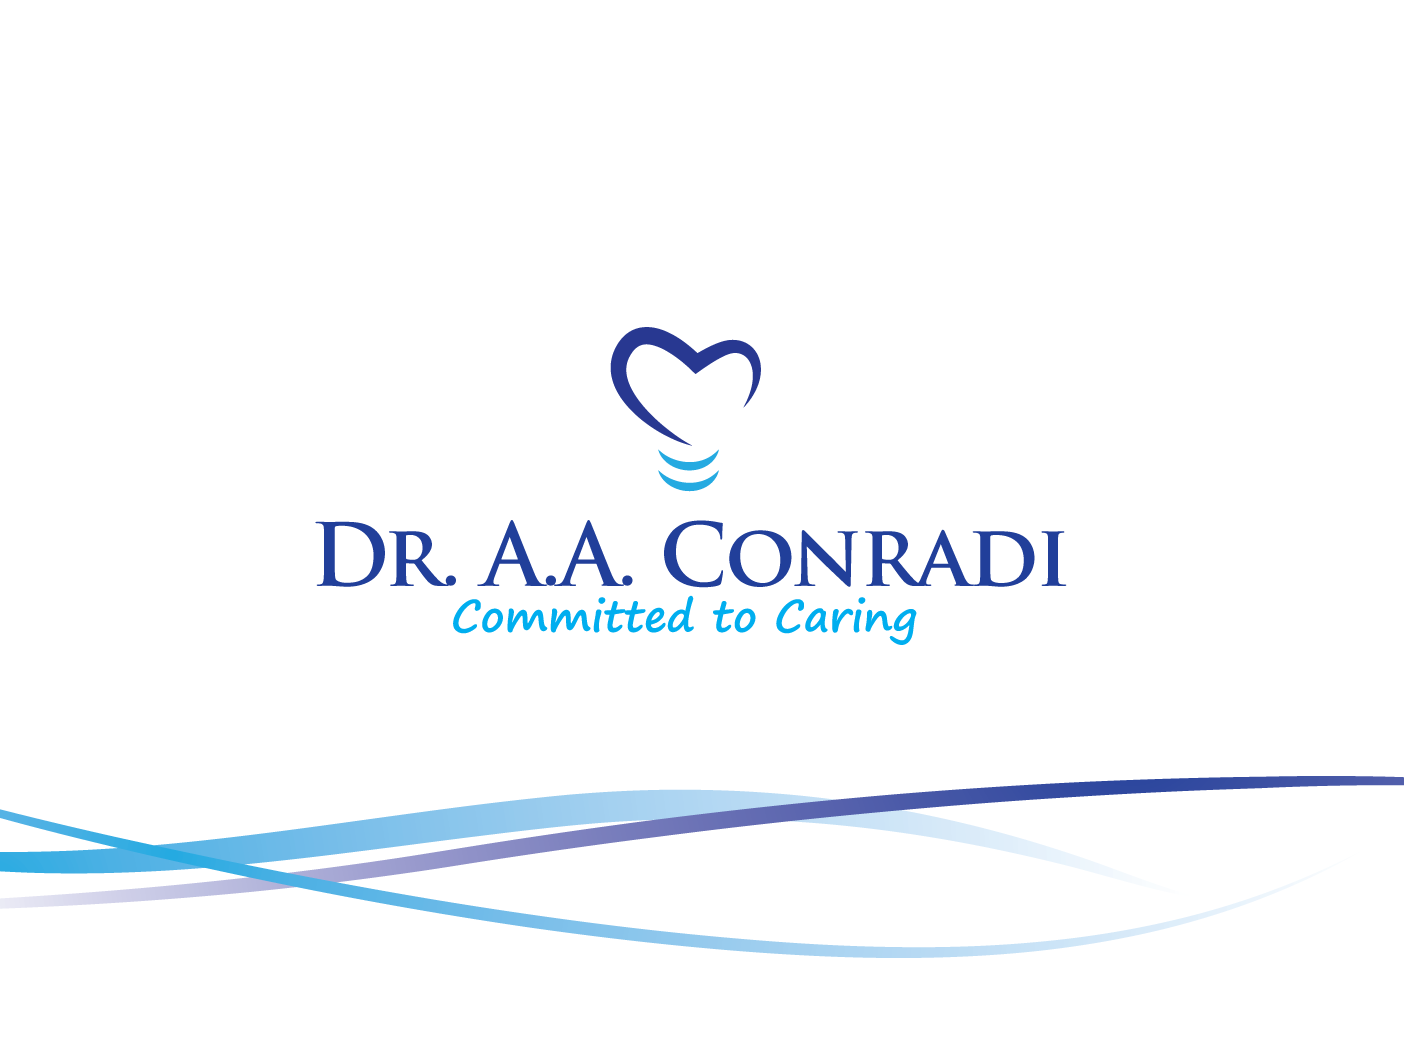 Logo Design by Severiano Fernandes - Entry No. 63 in the Logo Design Contest Unique Logo Design Wanted for Dr. A.A. Conradi.